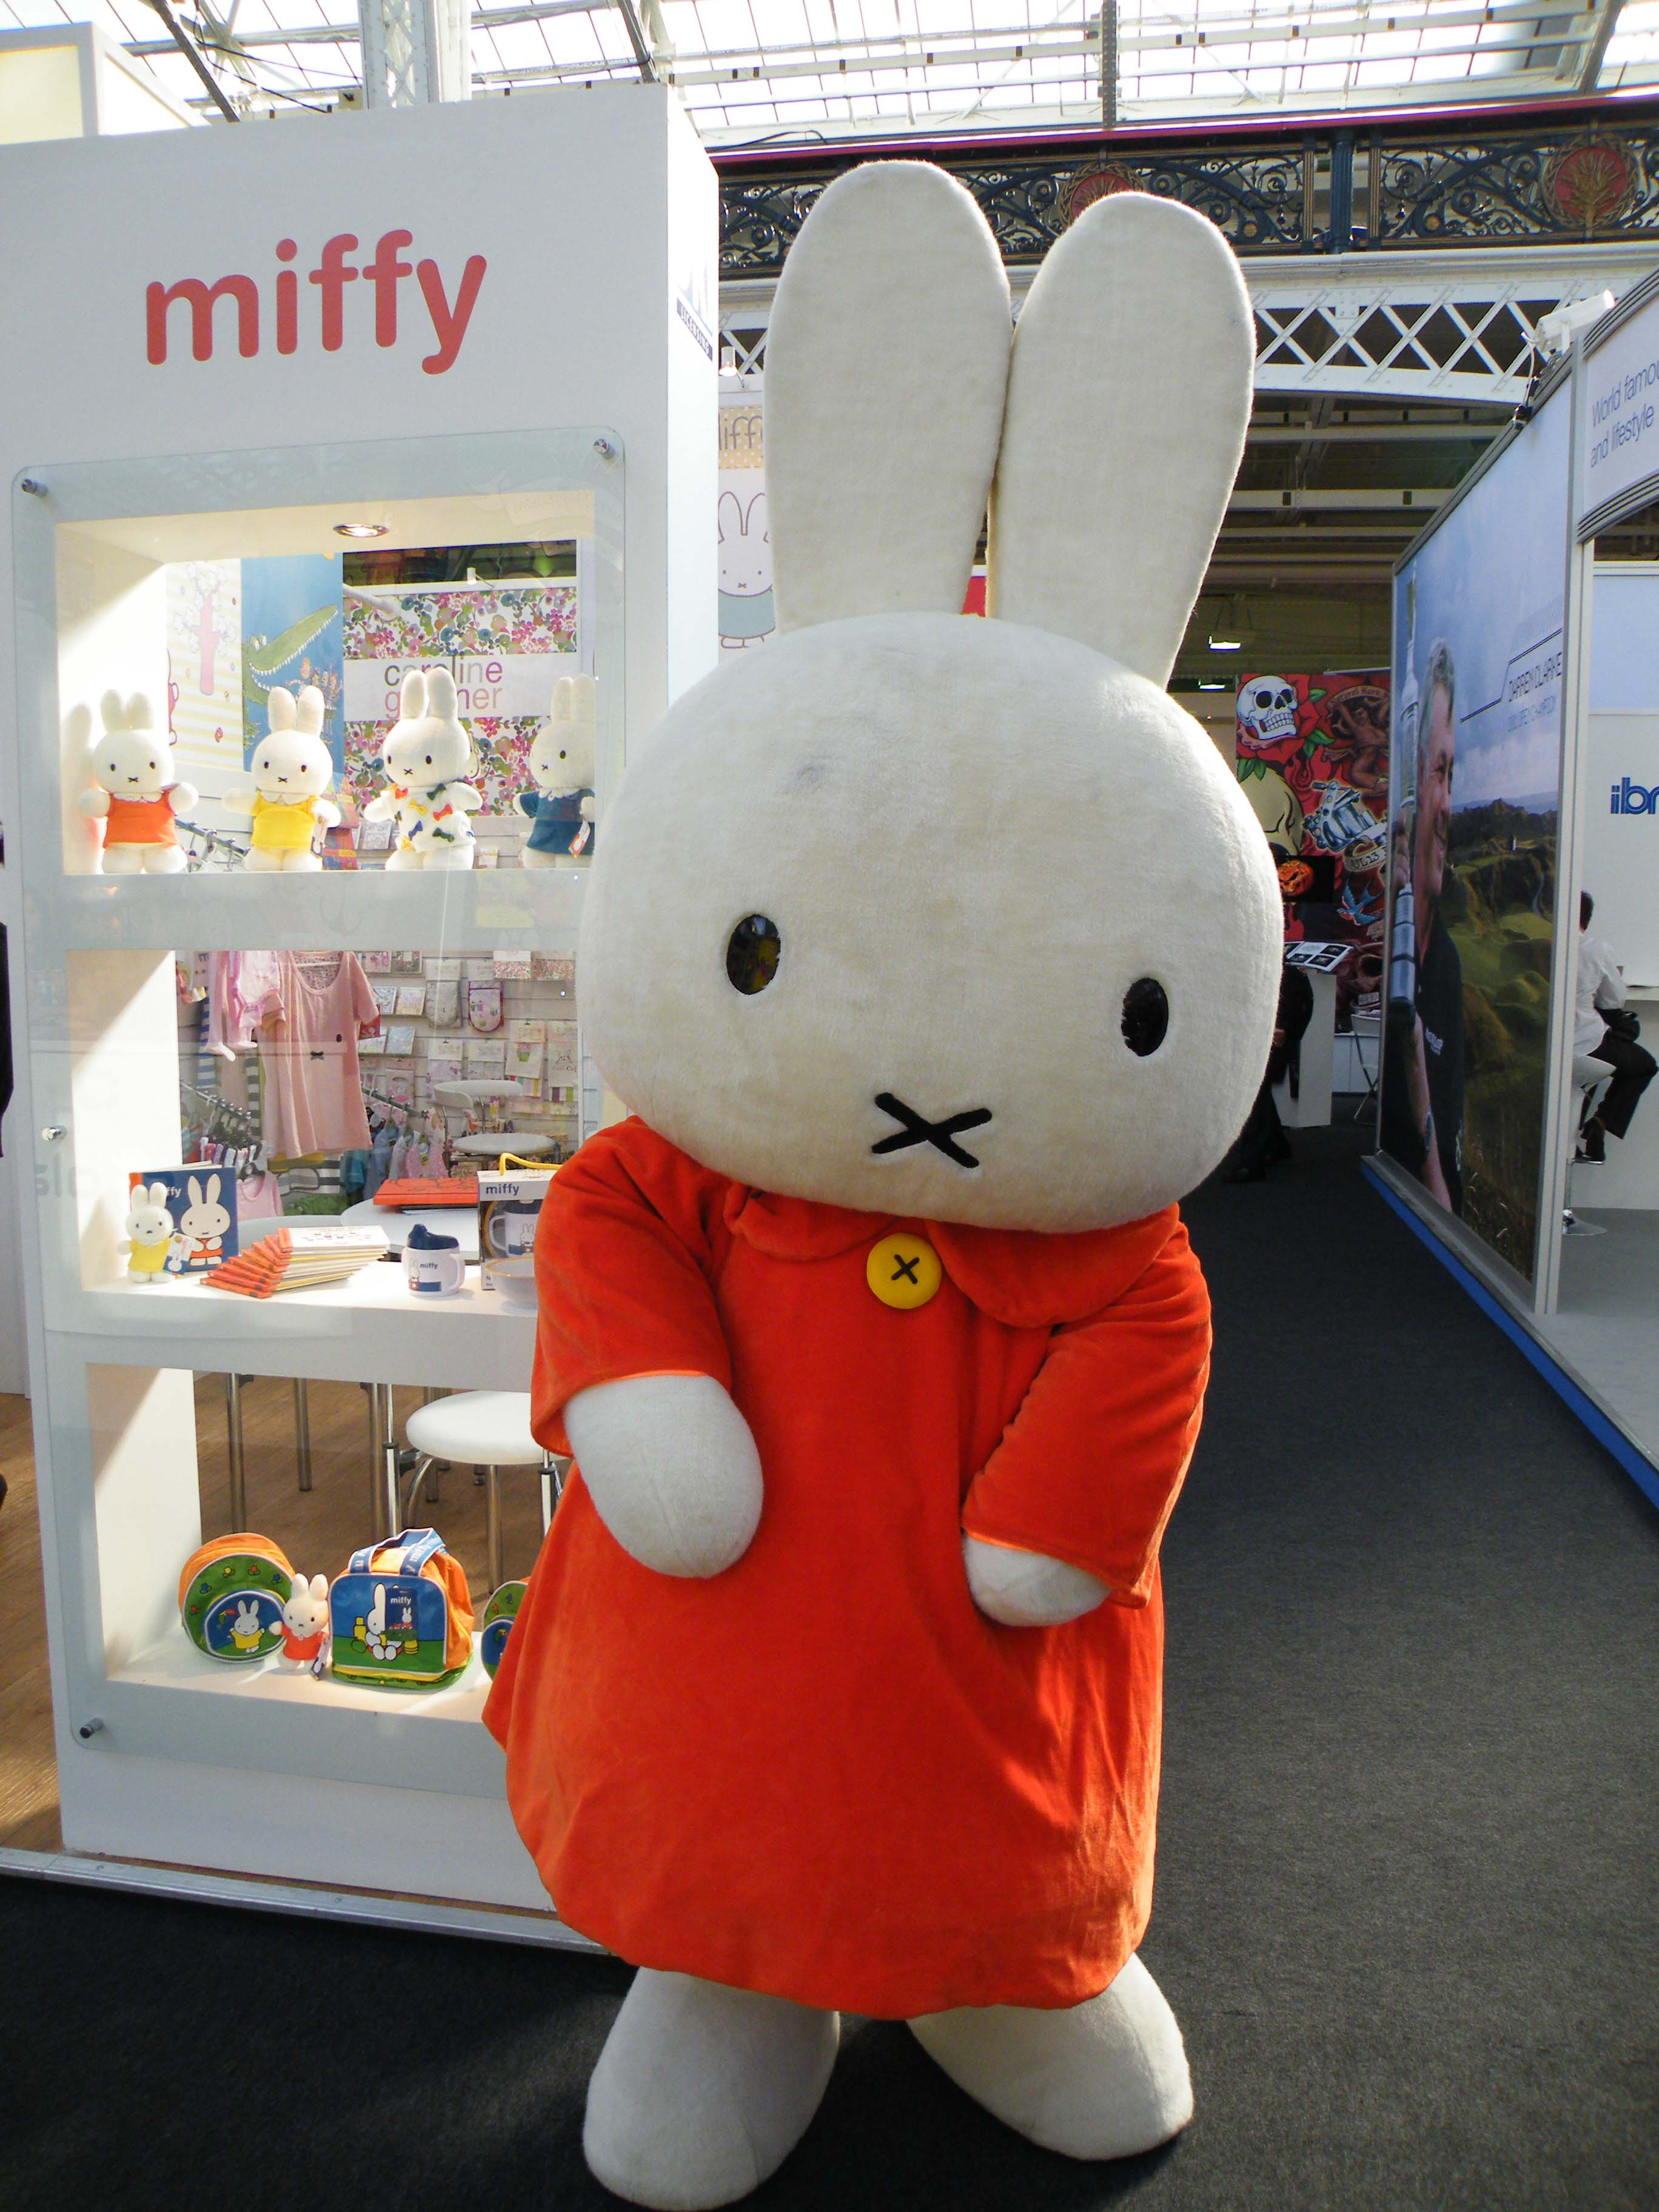 Soft Miffy costume character